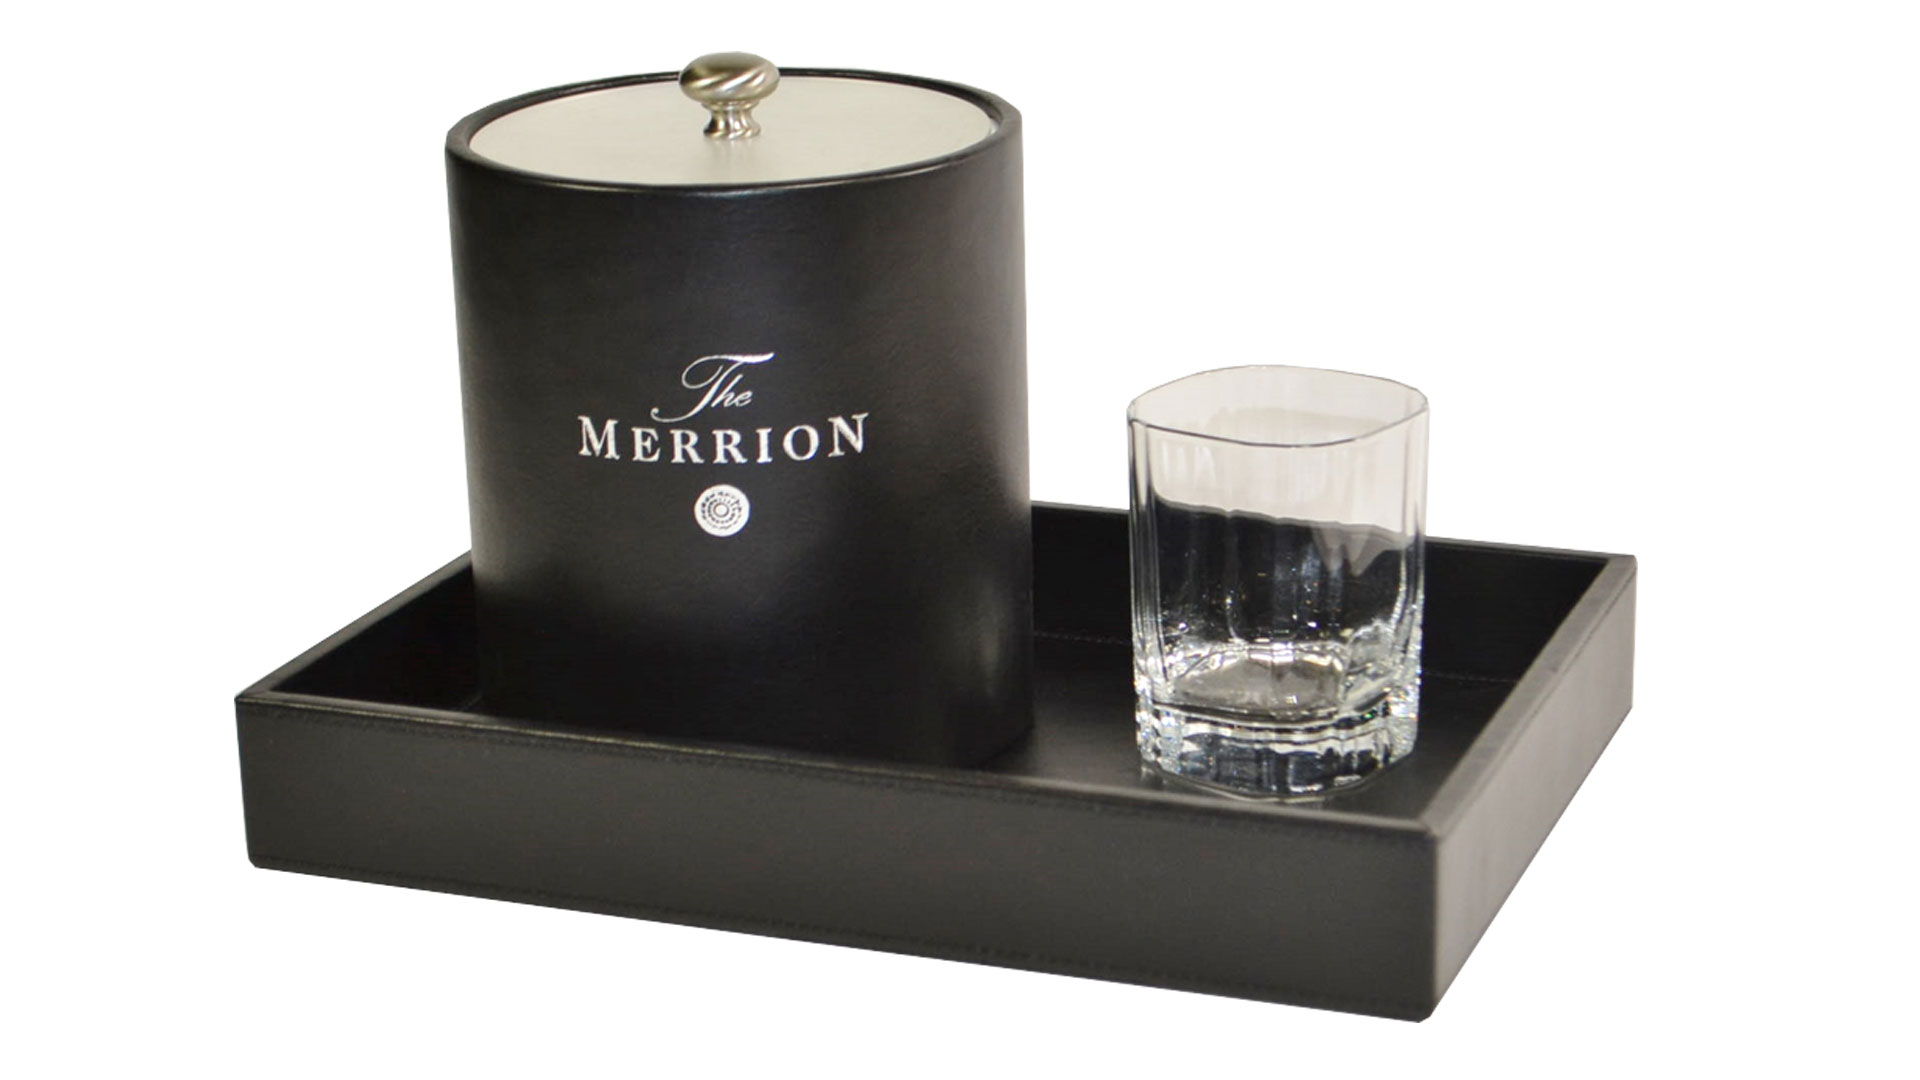 The Merrion Ice Bucket